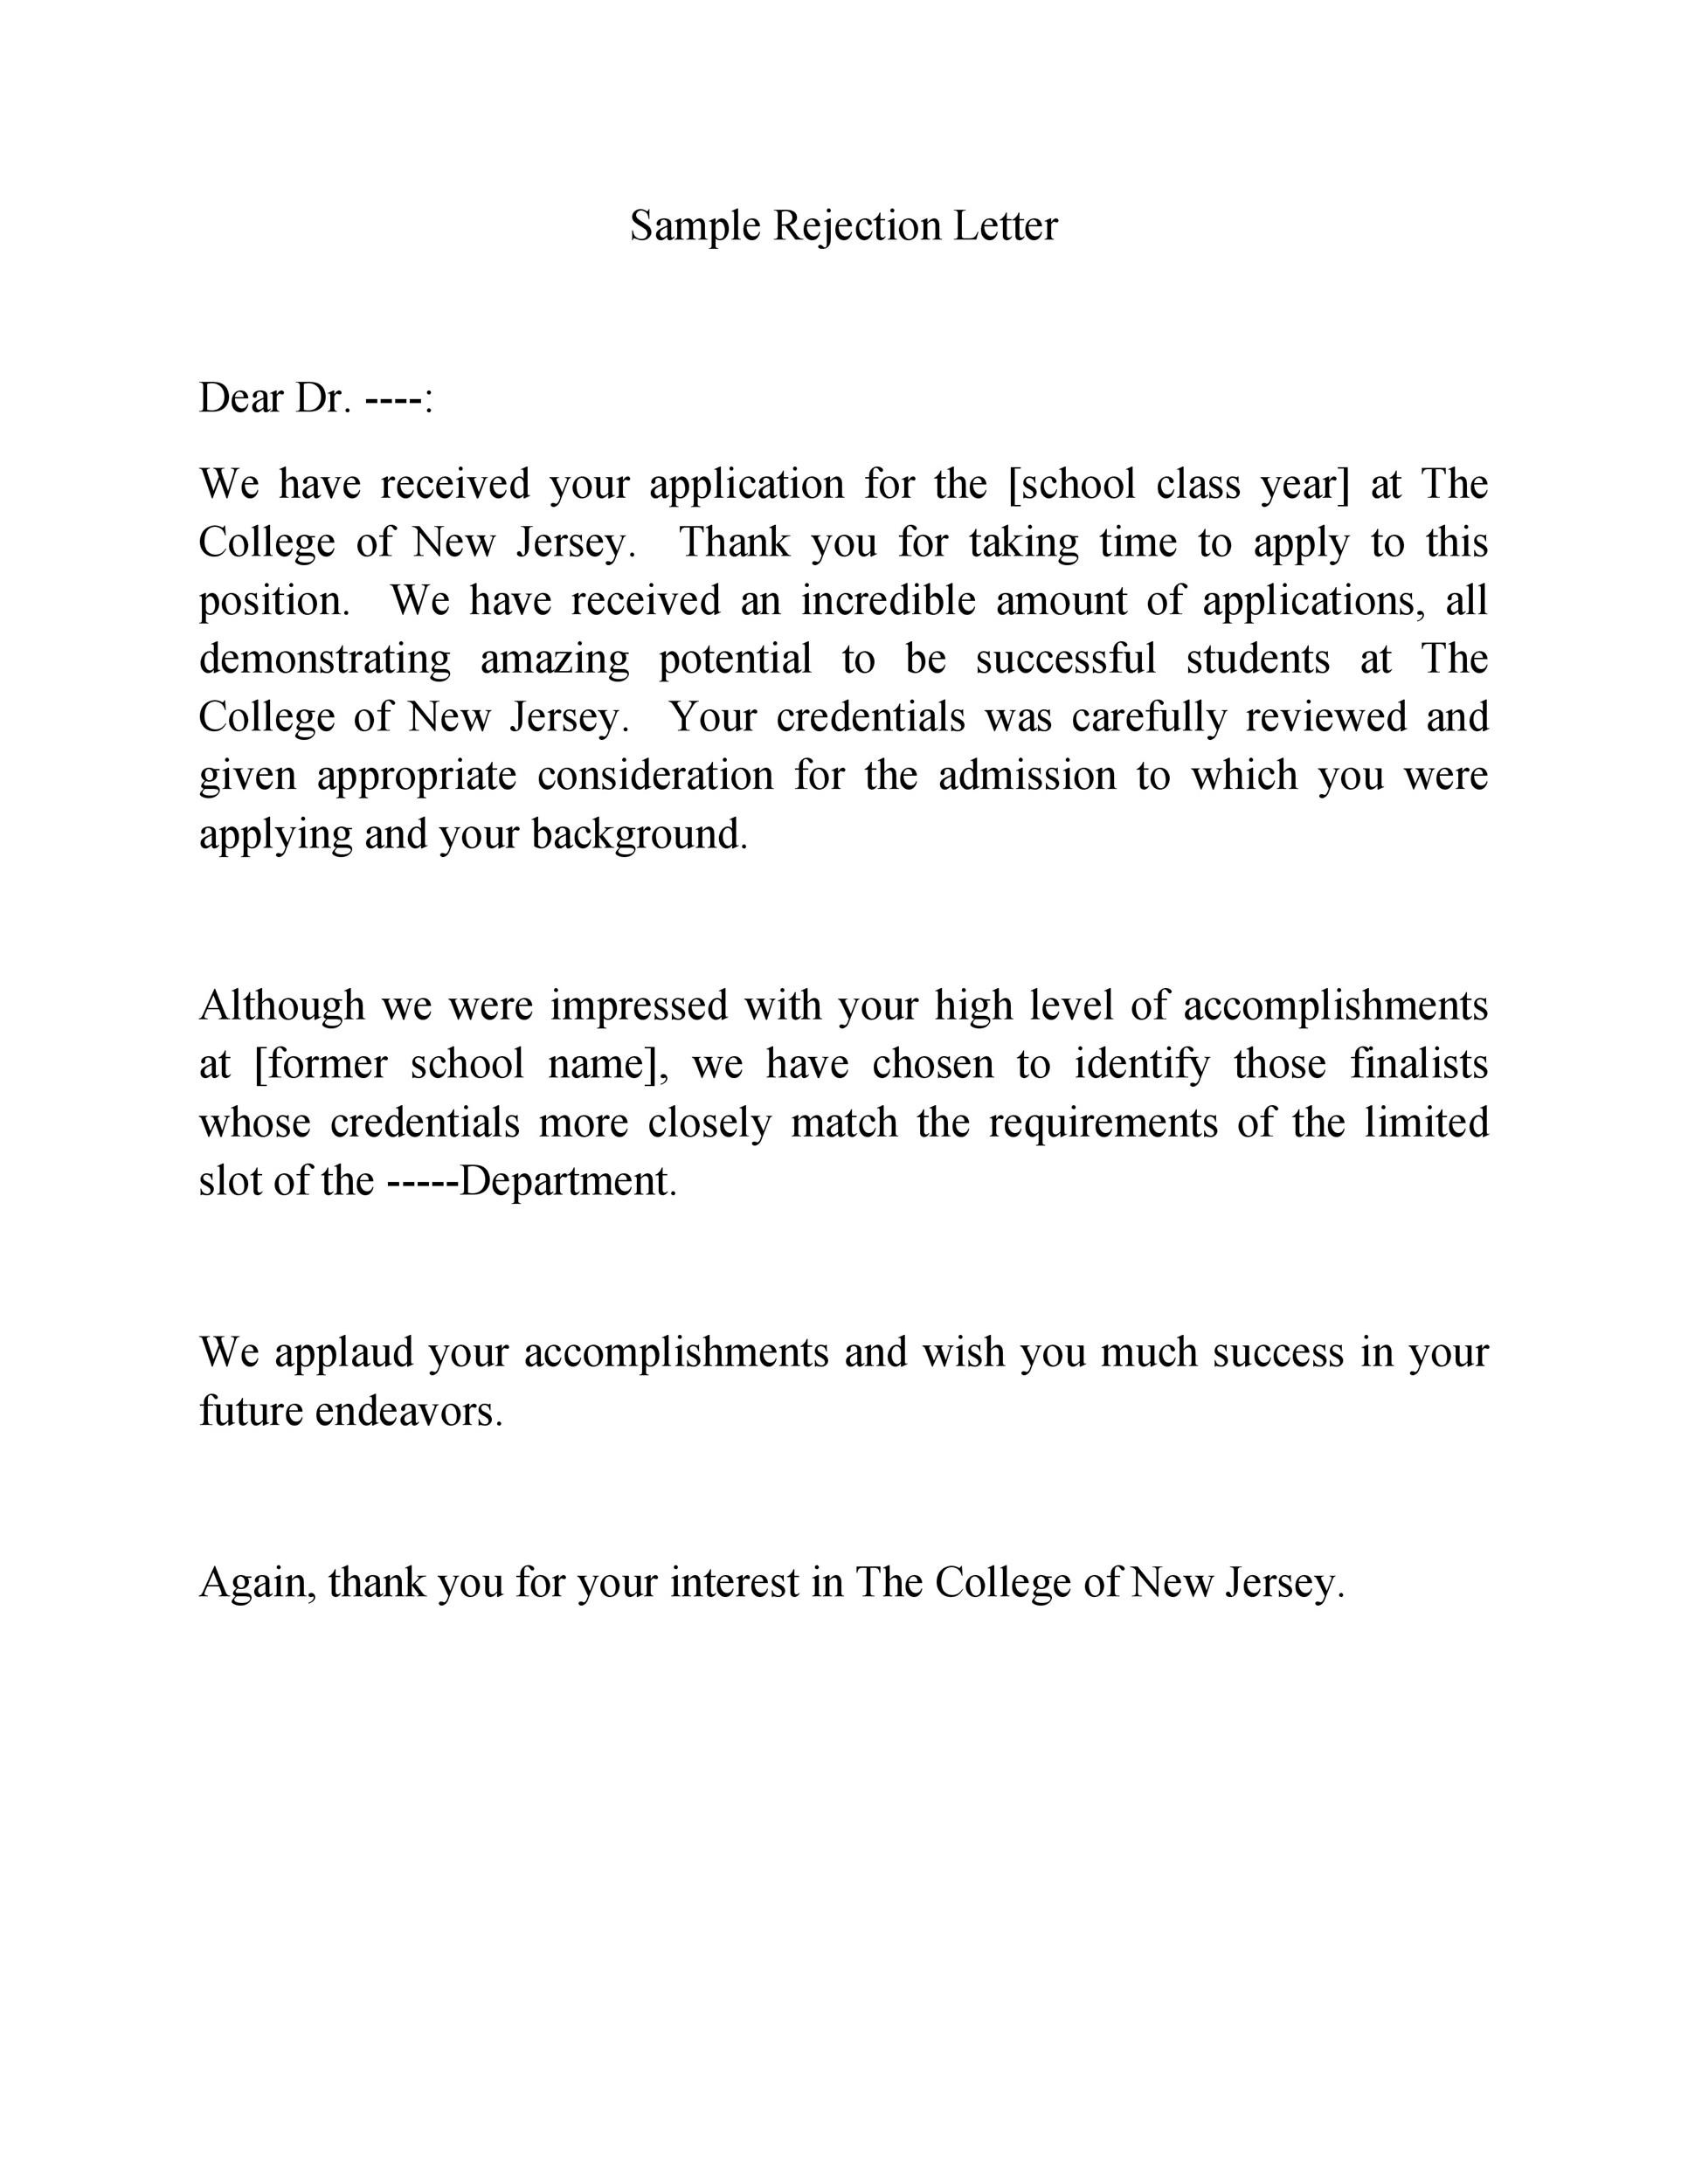 Free college rejection letter 31